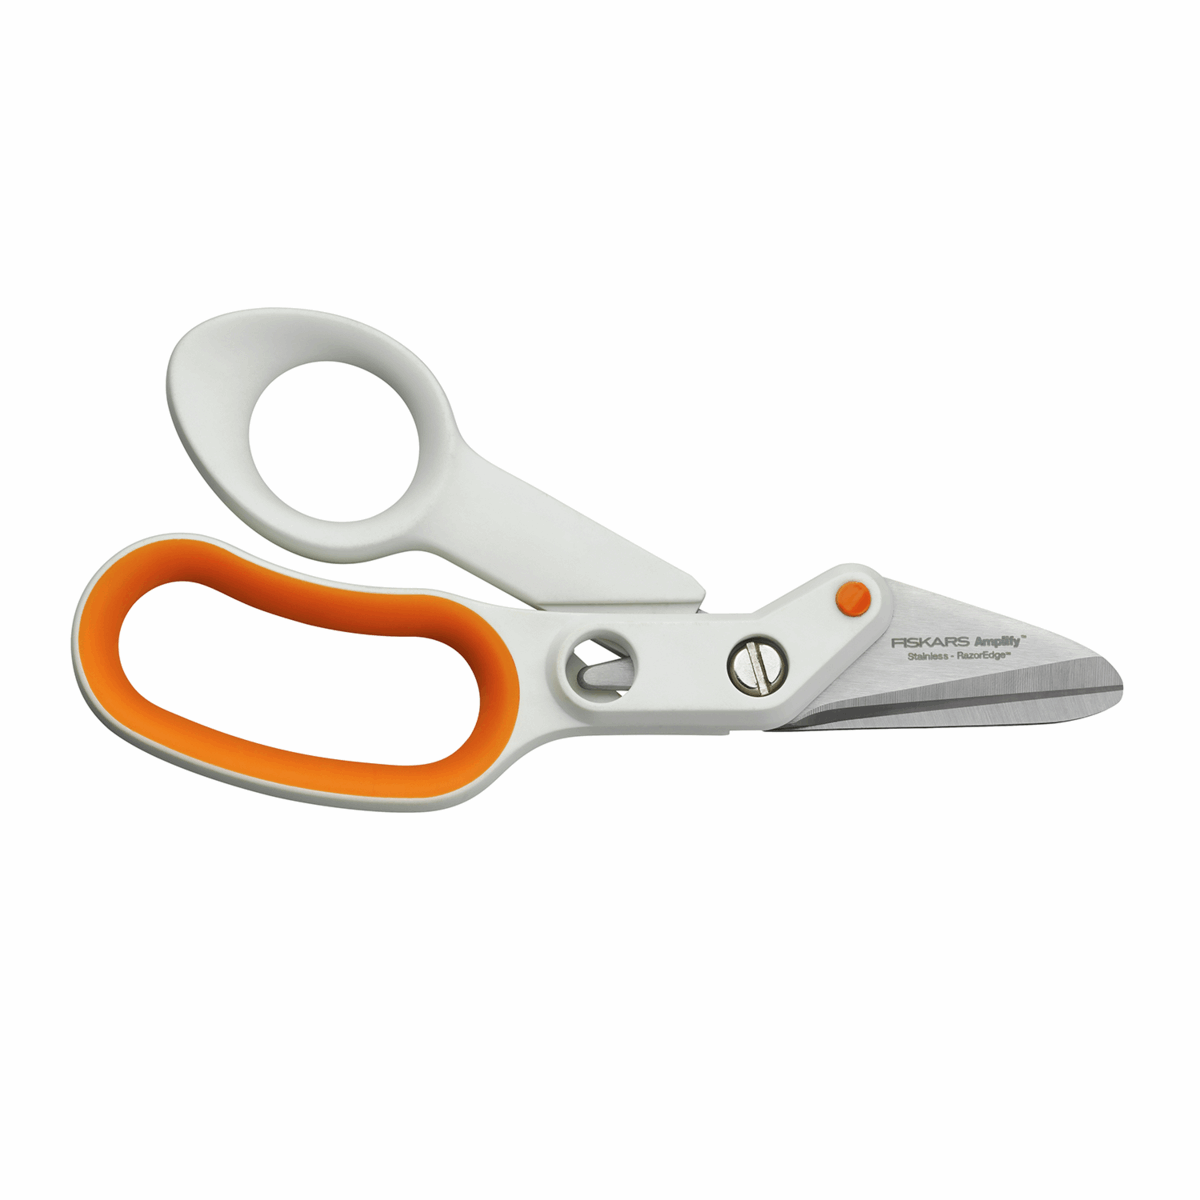 Fiskars Scissors - Amplify: High Performance Precision: 15cm/5.9in